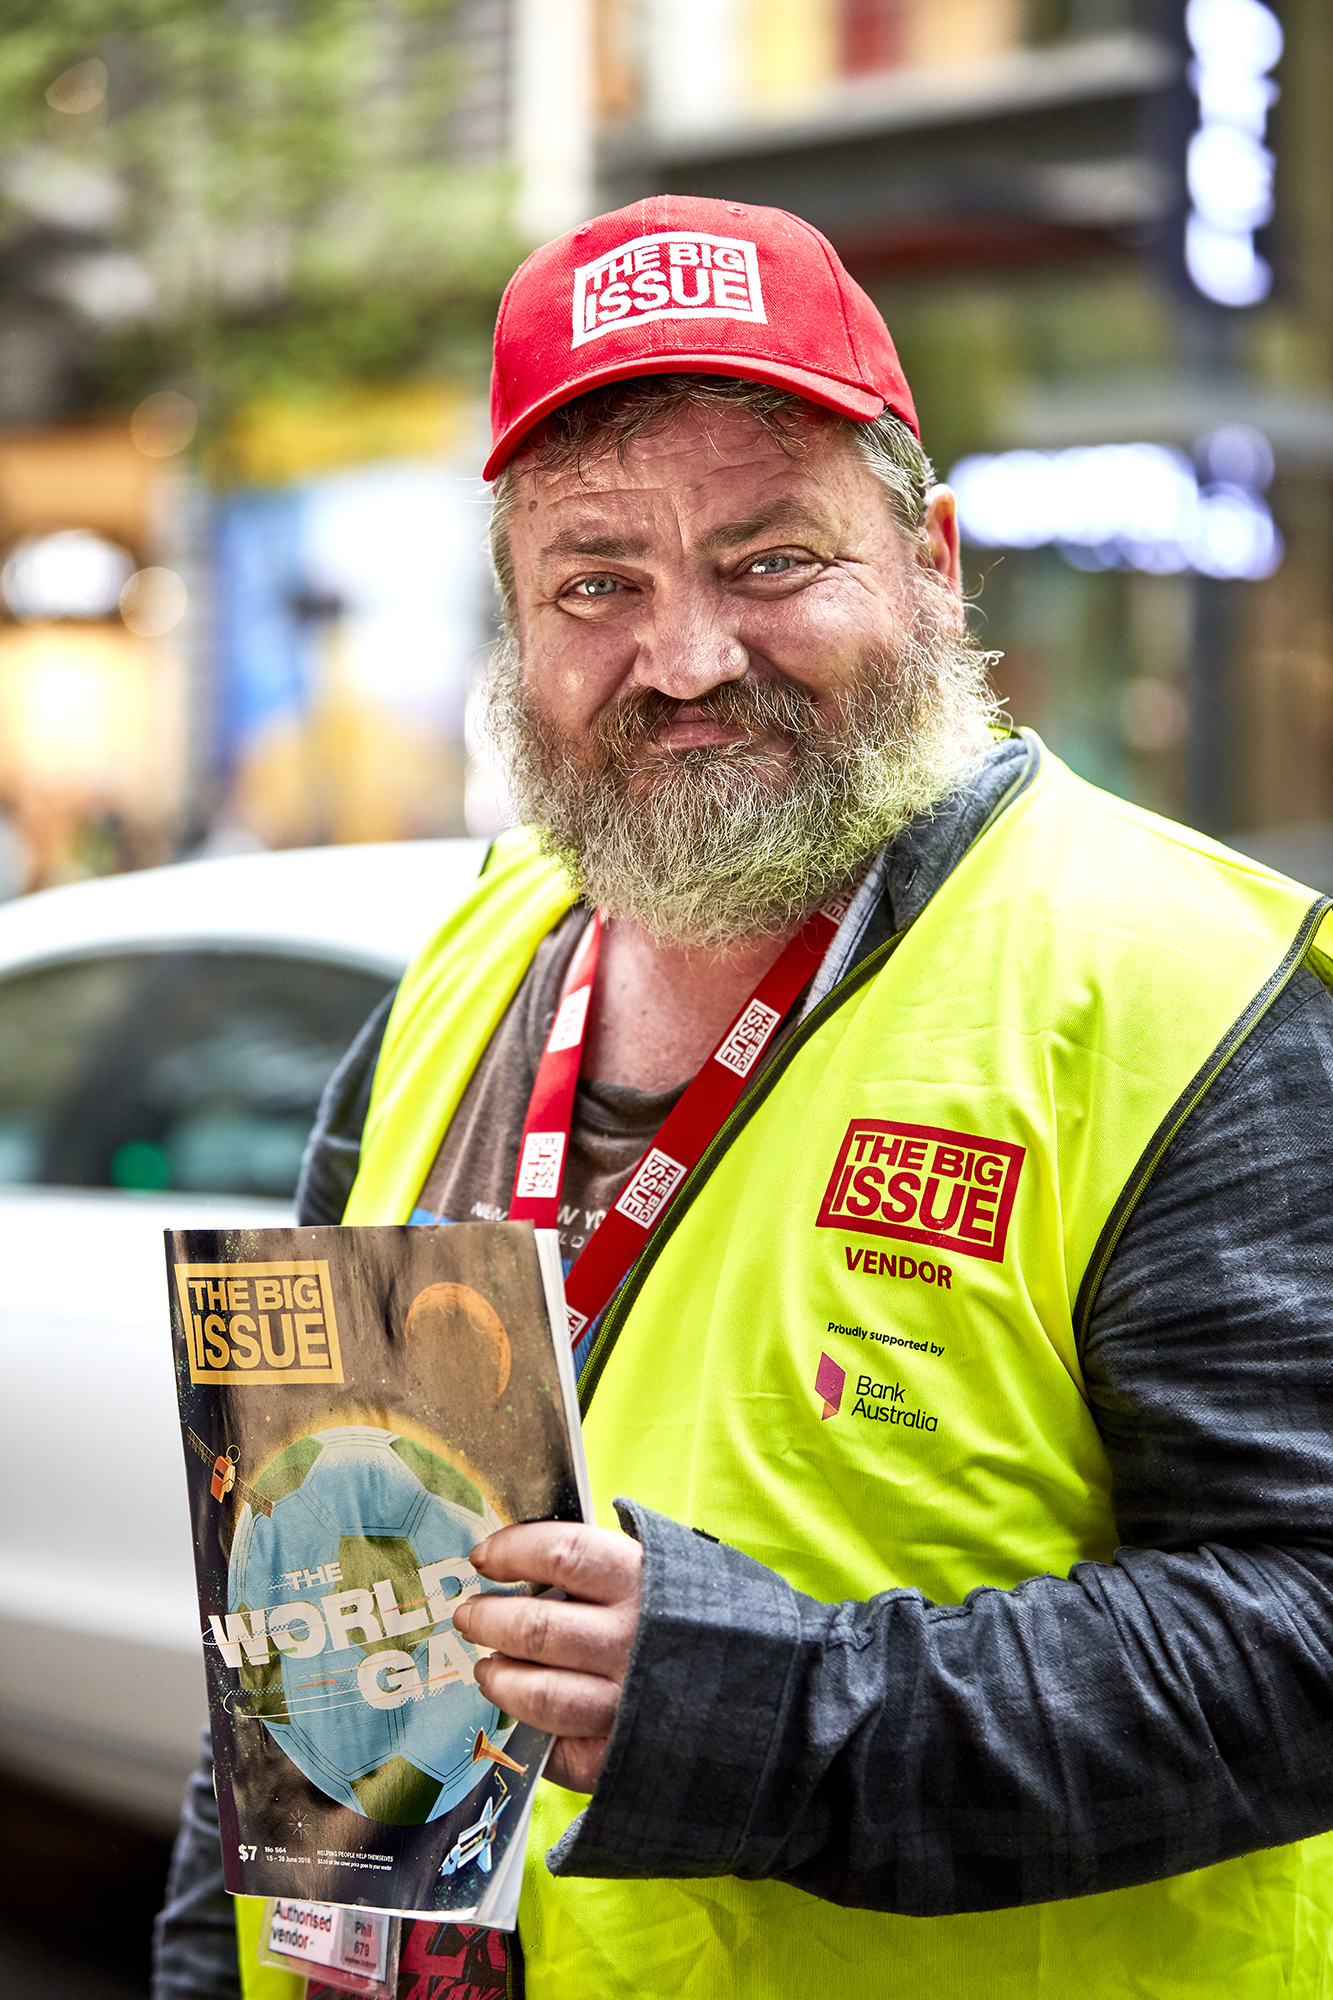 Big Issue - Phil 18.jpg